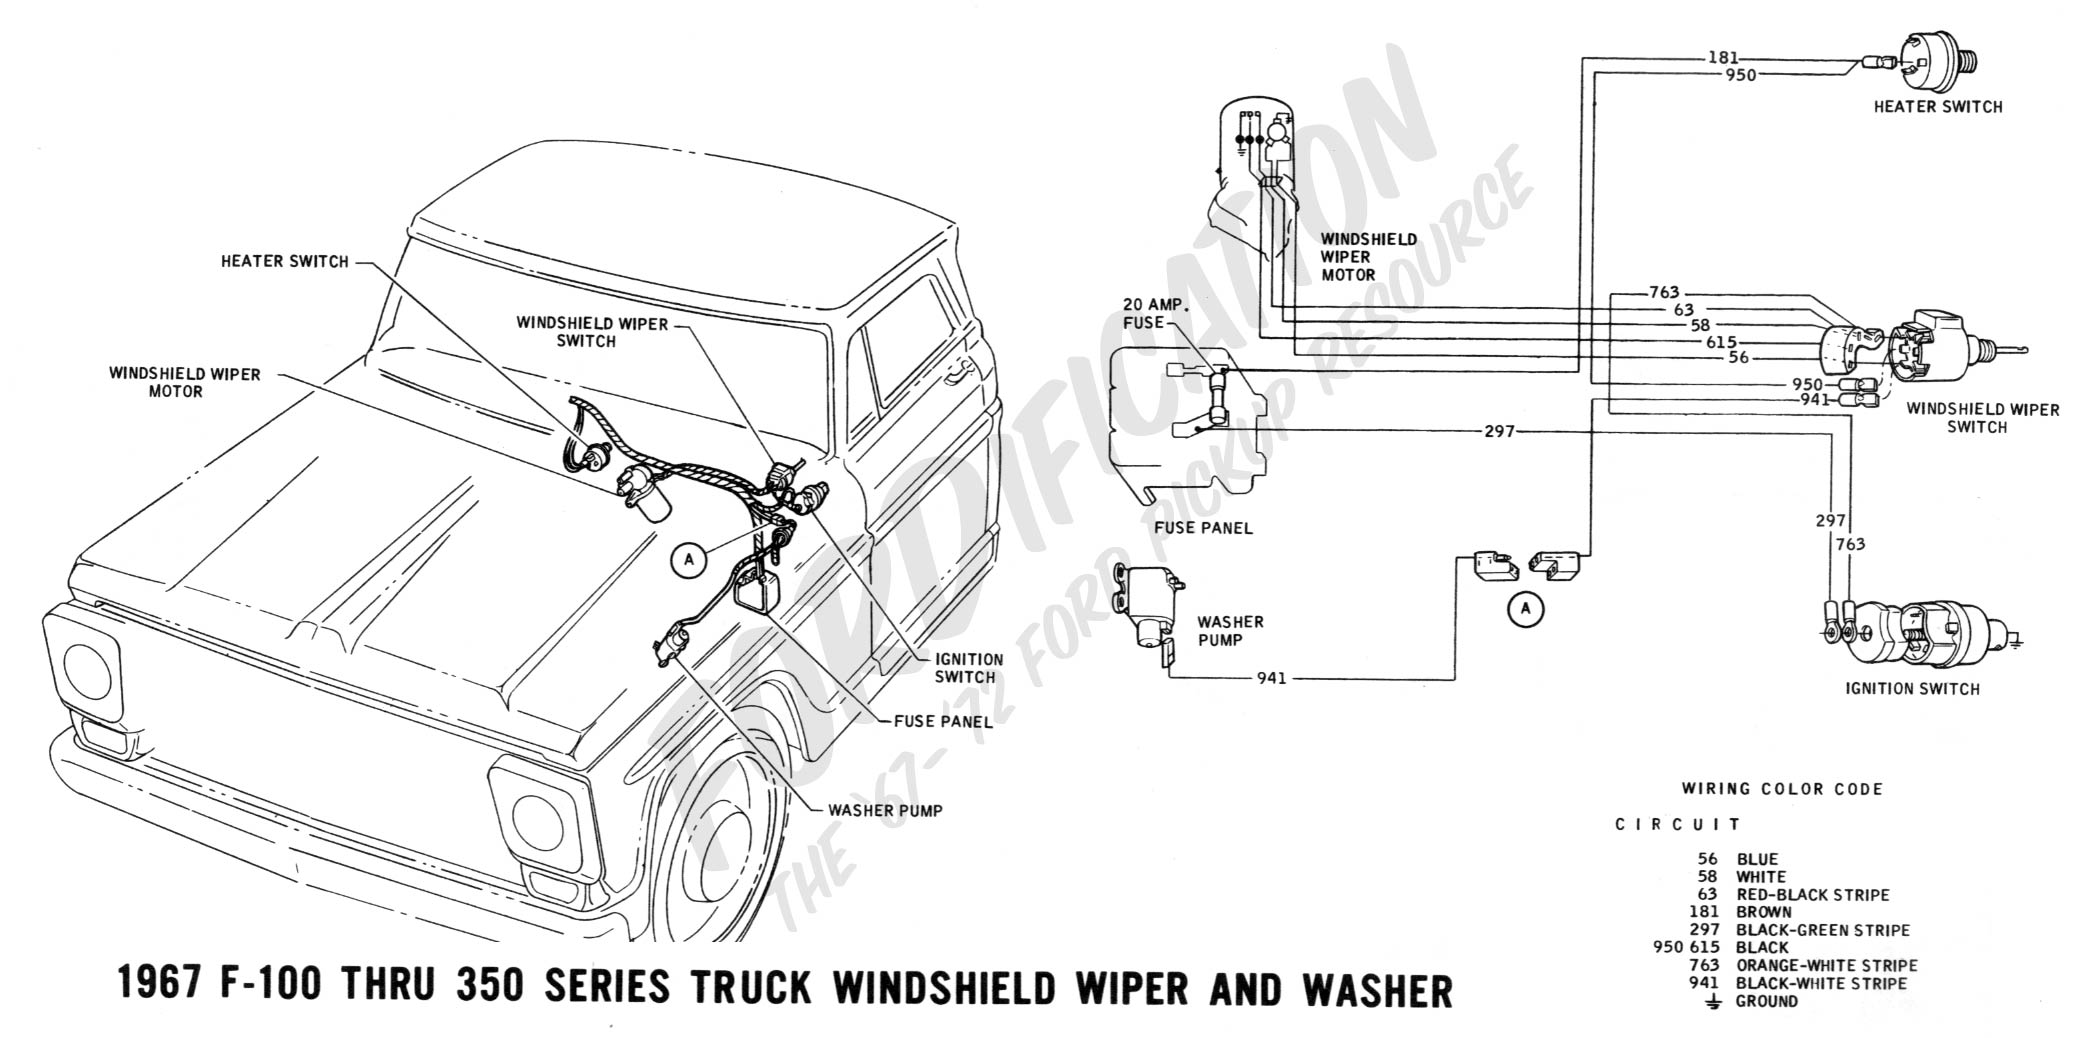 Ford truck technical drawings and schematics section h wiring 1967 f 100 thru f 350 windshield wiper and washer asfbconference2016